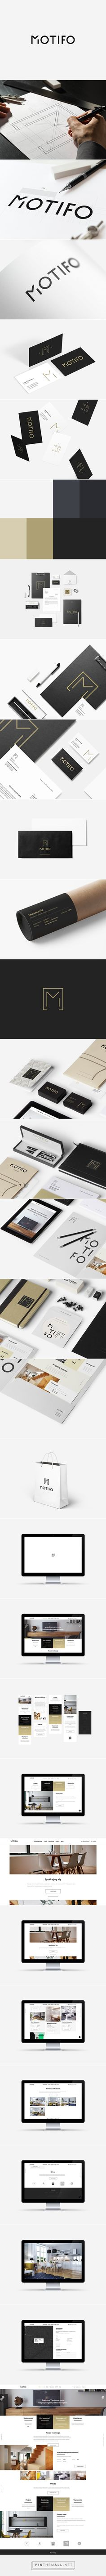 MOTIFO - Interior Design Architect | Branding & Website on Behance... - a grouped images picture - Pin Them All